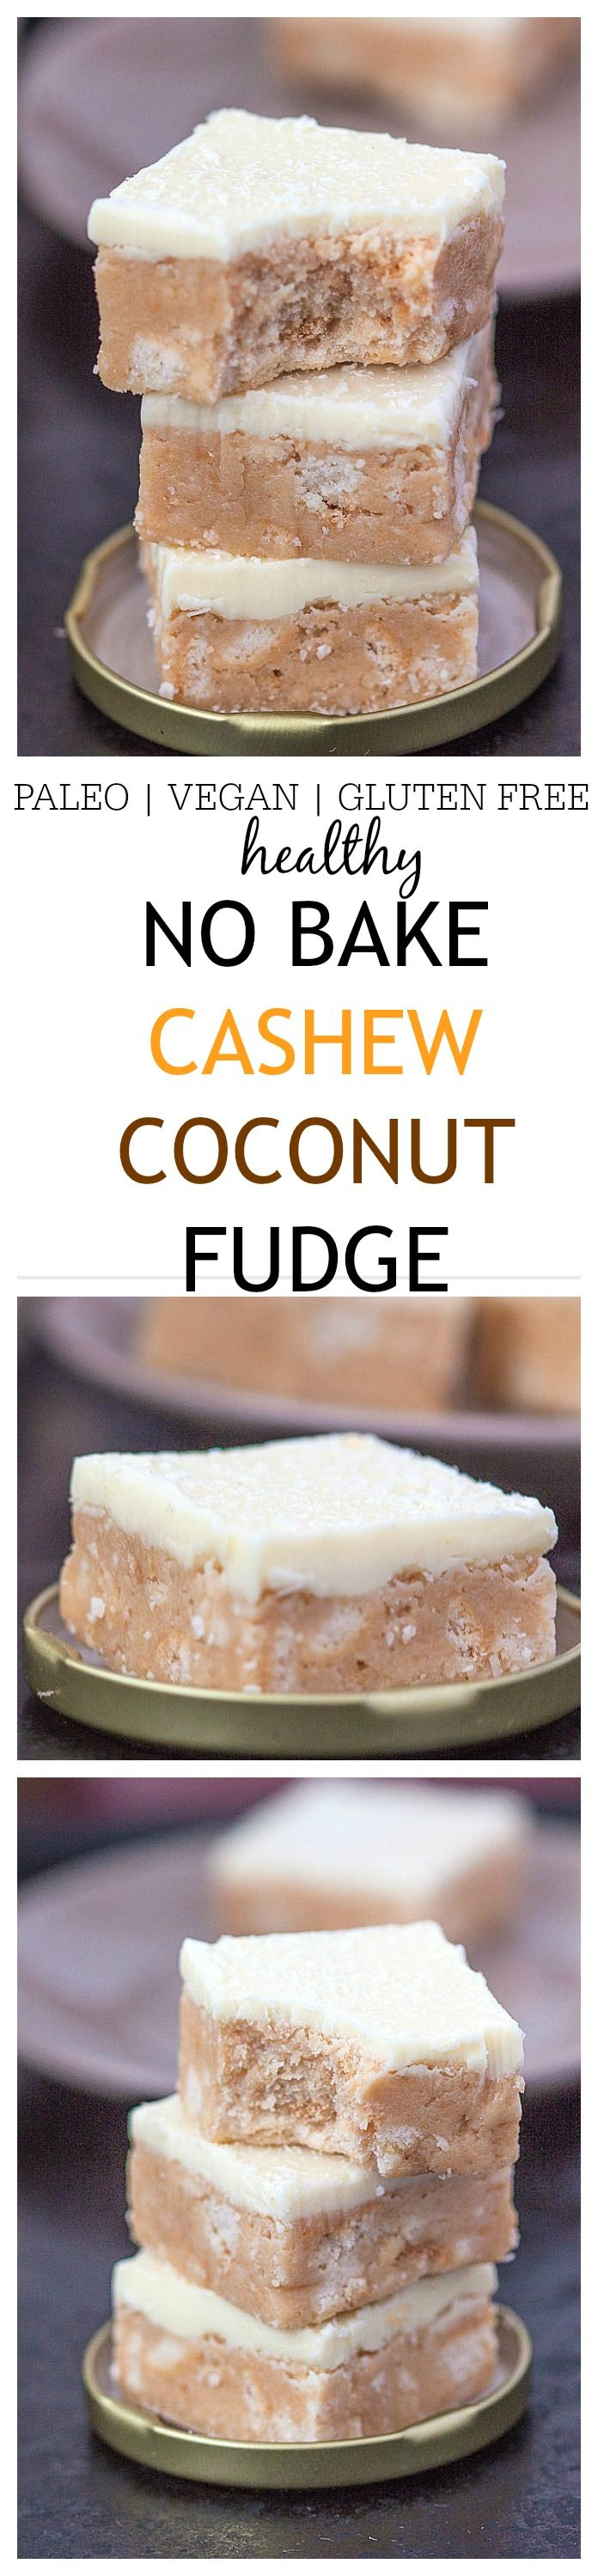 """Heathy {No Bake!} Cashew Coconut Fudge- The most delicious """"healthy"""" fudge you'll ever have based off cashew and coconut flavours- Paleo, vegan, dairy free and gluten free options, it's the perfect snack or after dinner treat with an optional protein boost! No baking required! @thebigmansworld - thebigmansworld.com"""